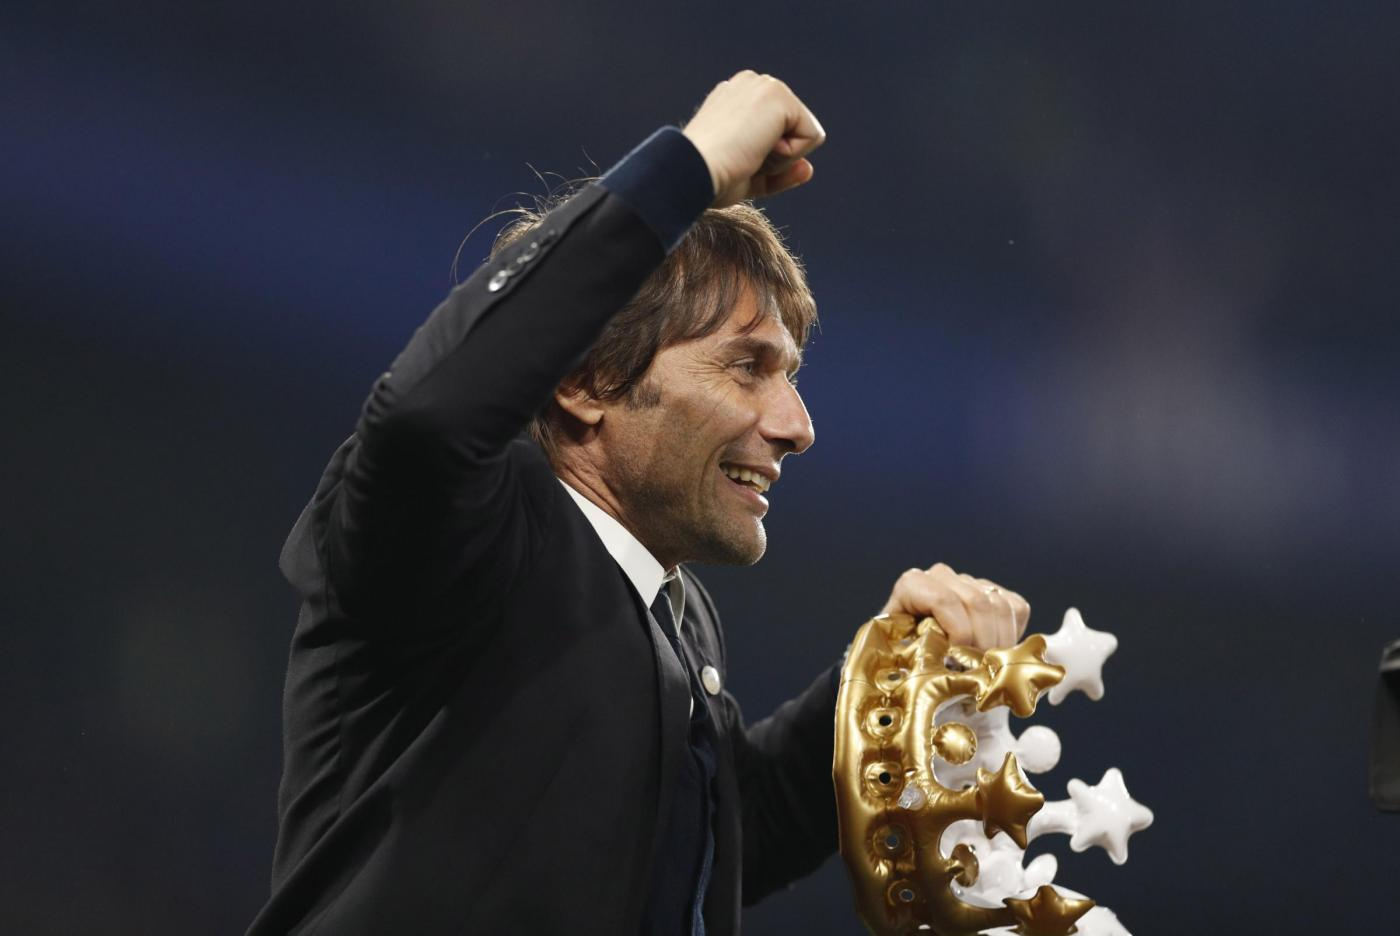 La Premier League parla italiano, Conte: